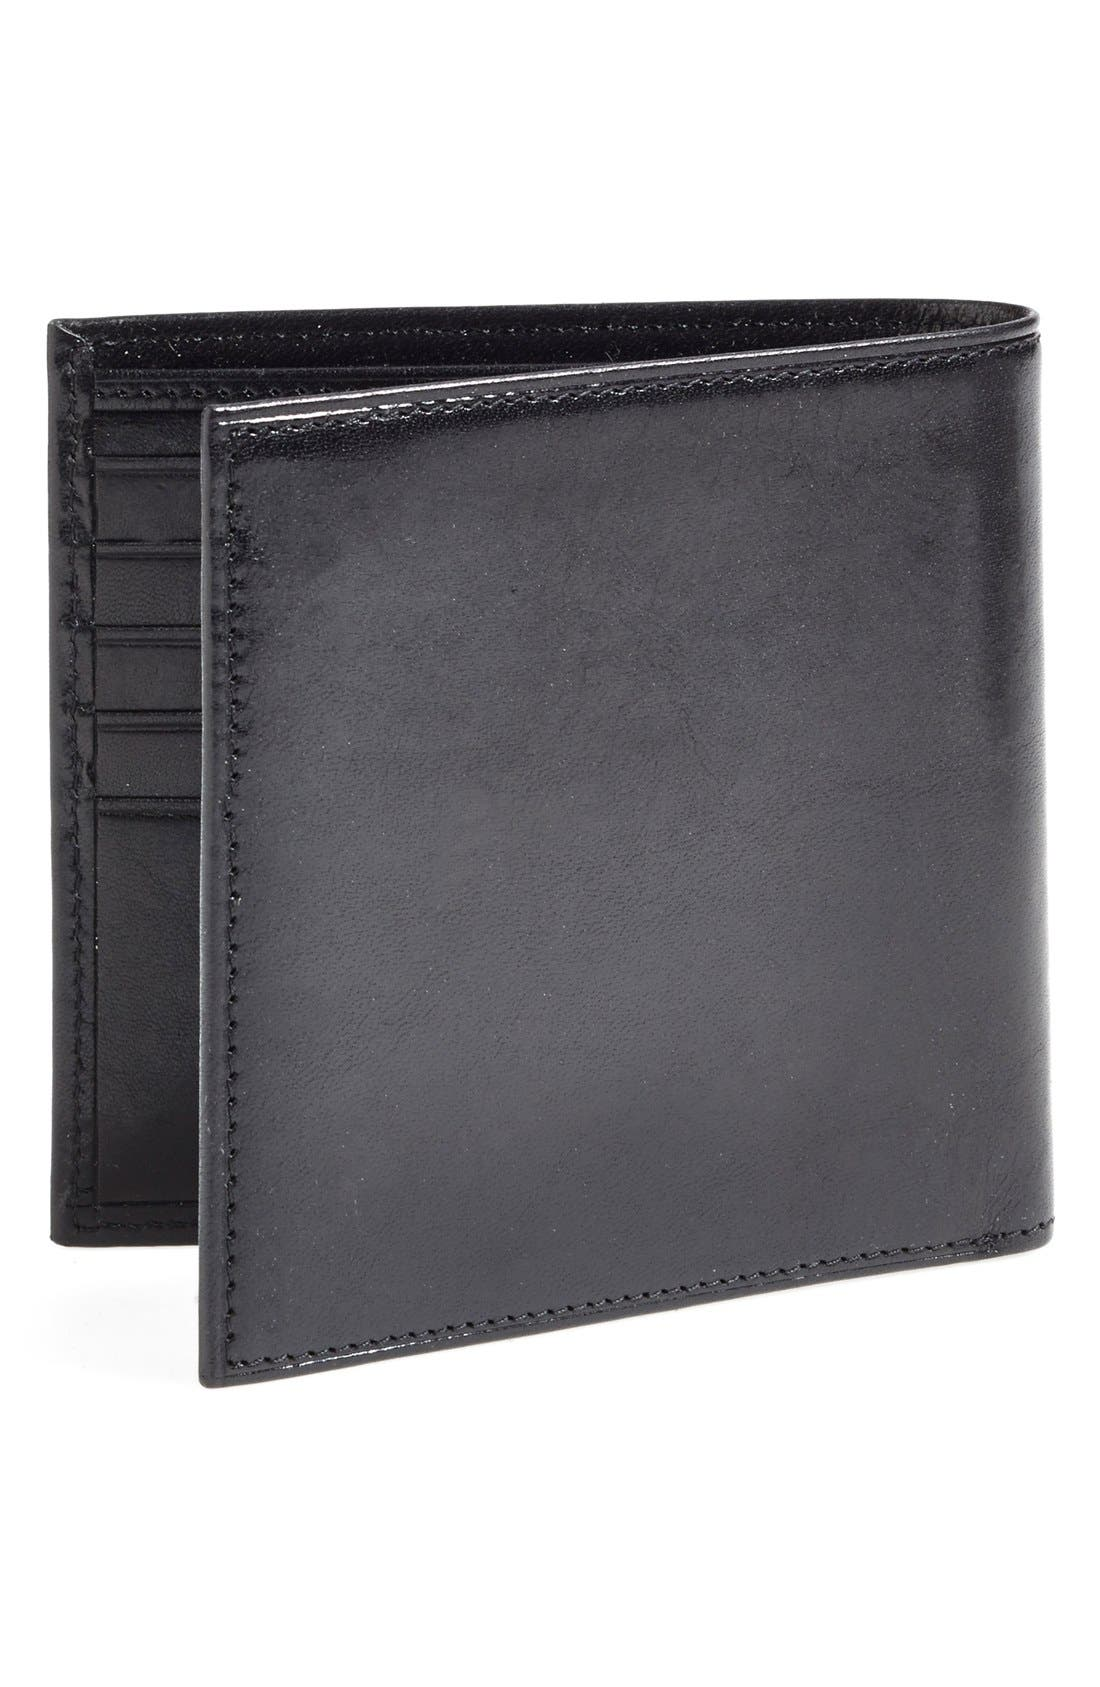 'Old Leather' Bifold Wallet,                             Alternate thumbnail 4, color,                             001